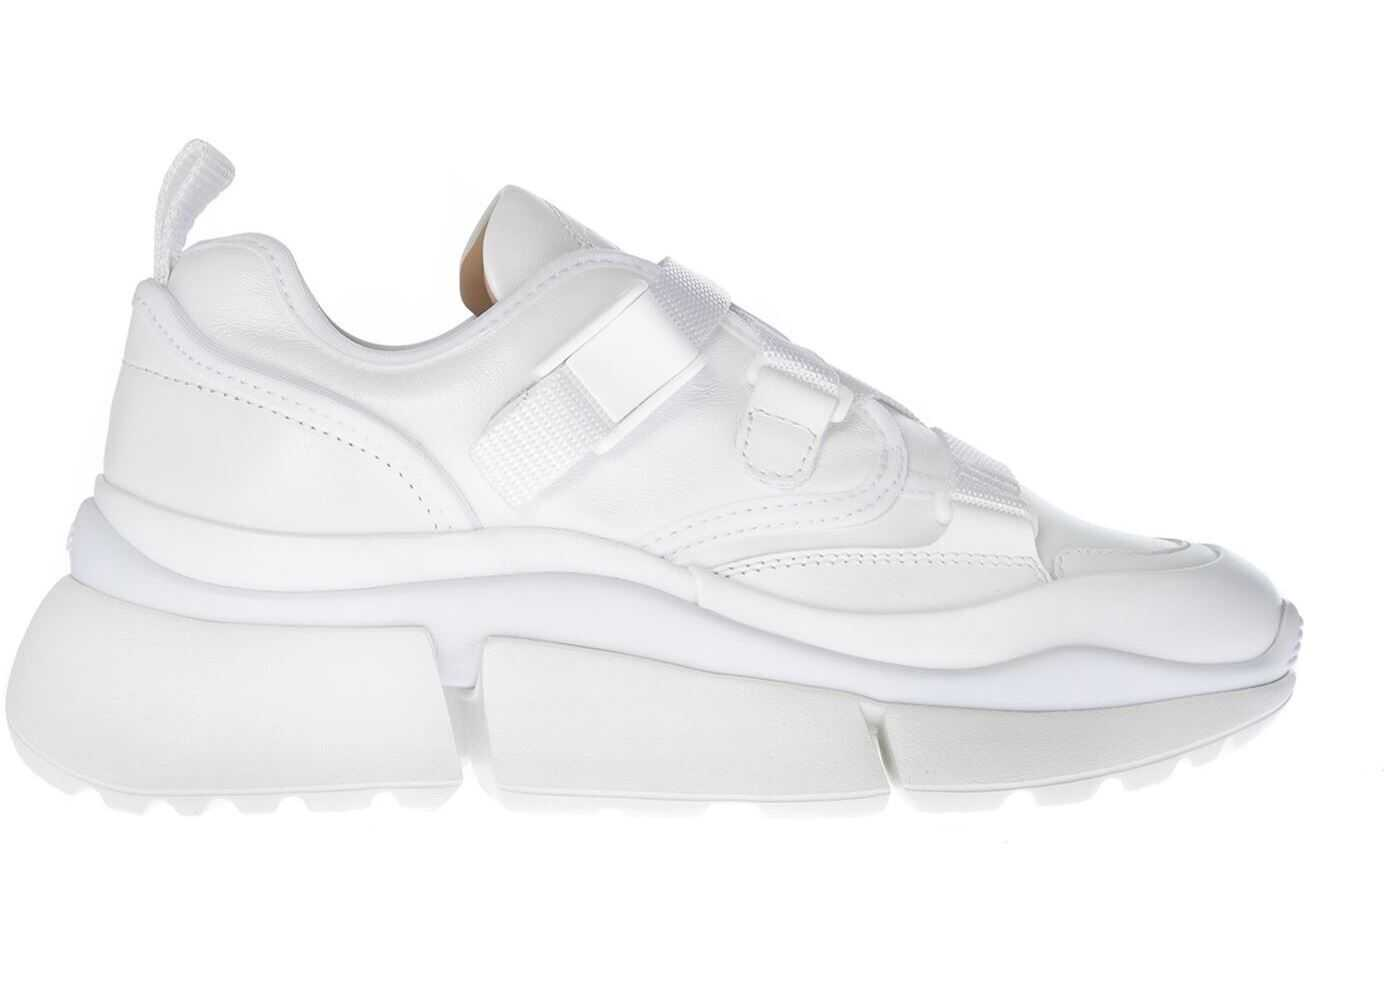 Chloe Sonnie White Nappa Leather Sneakers White